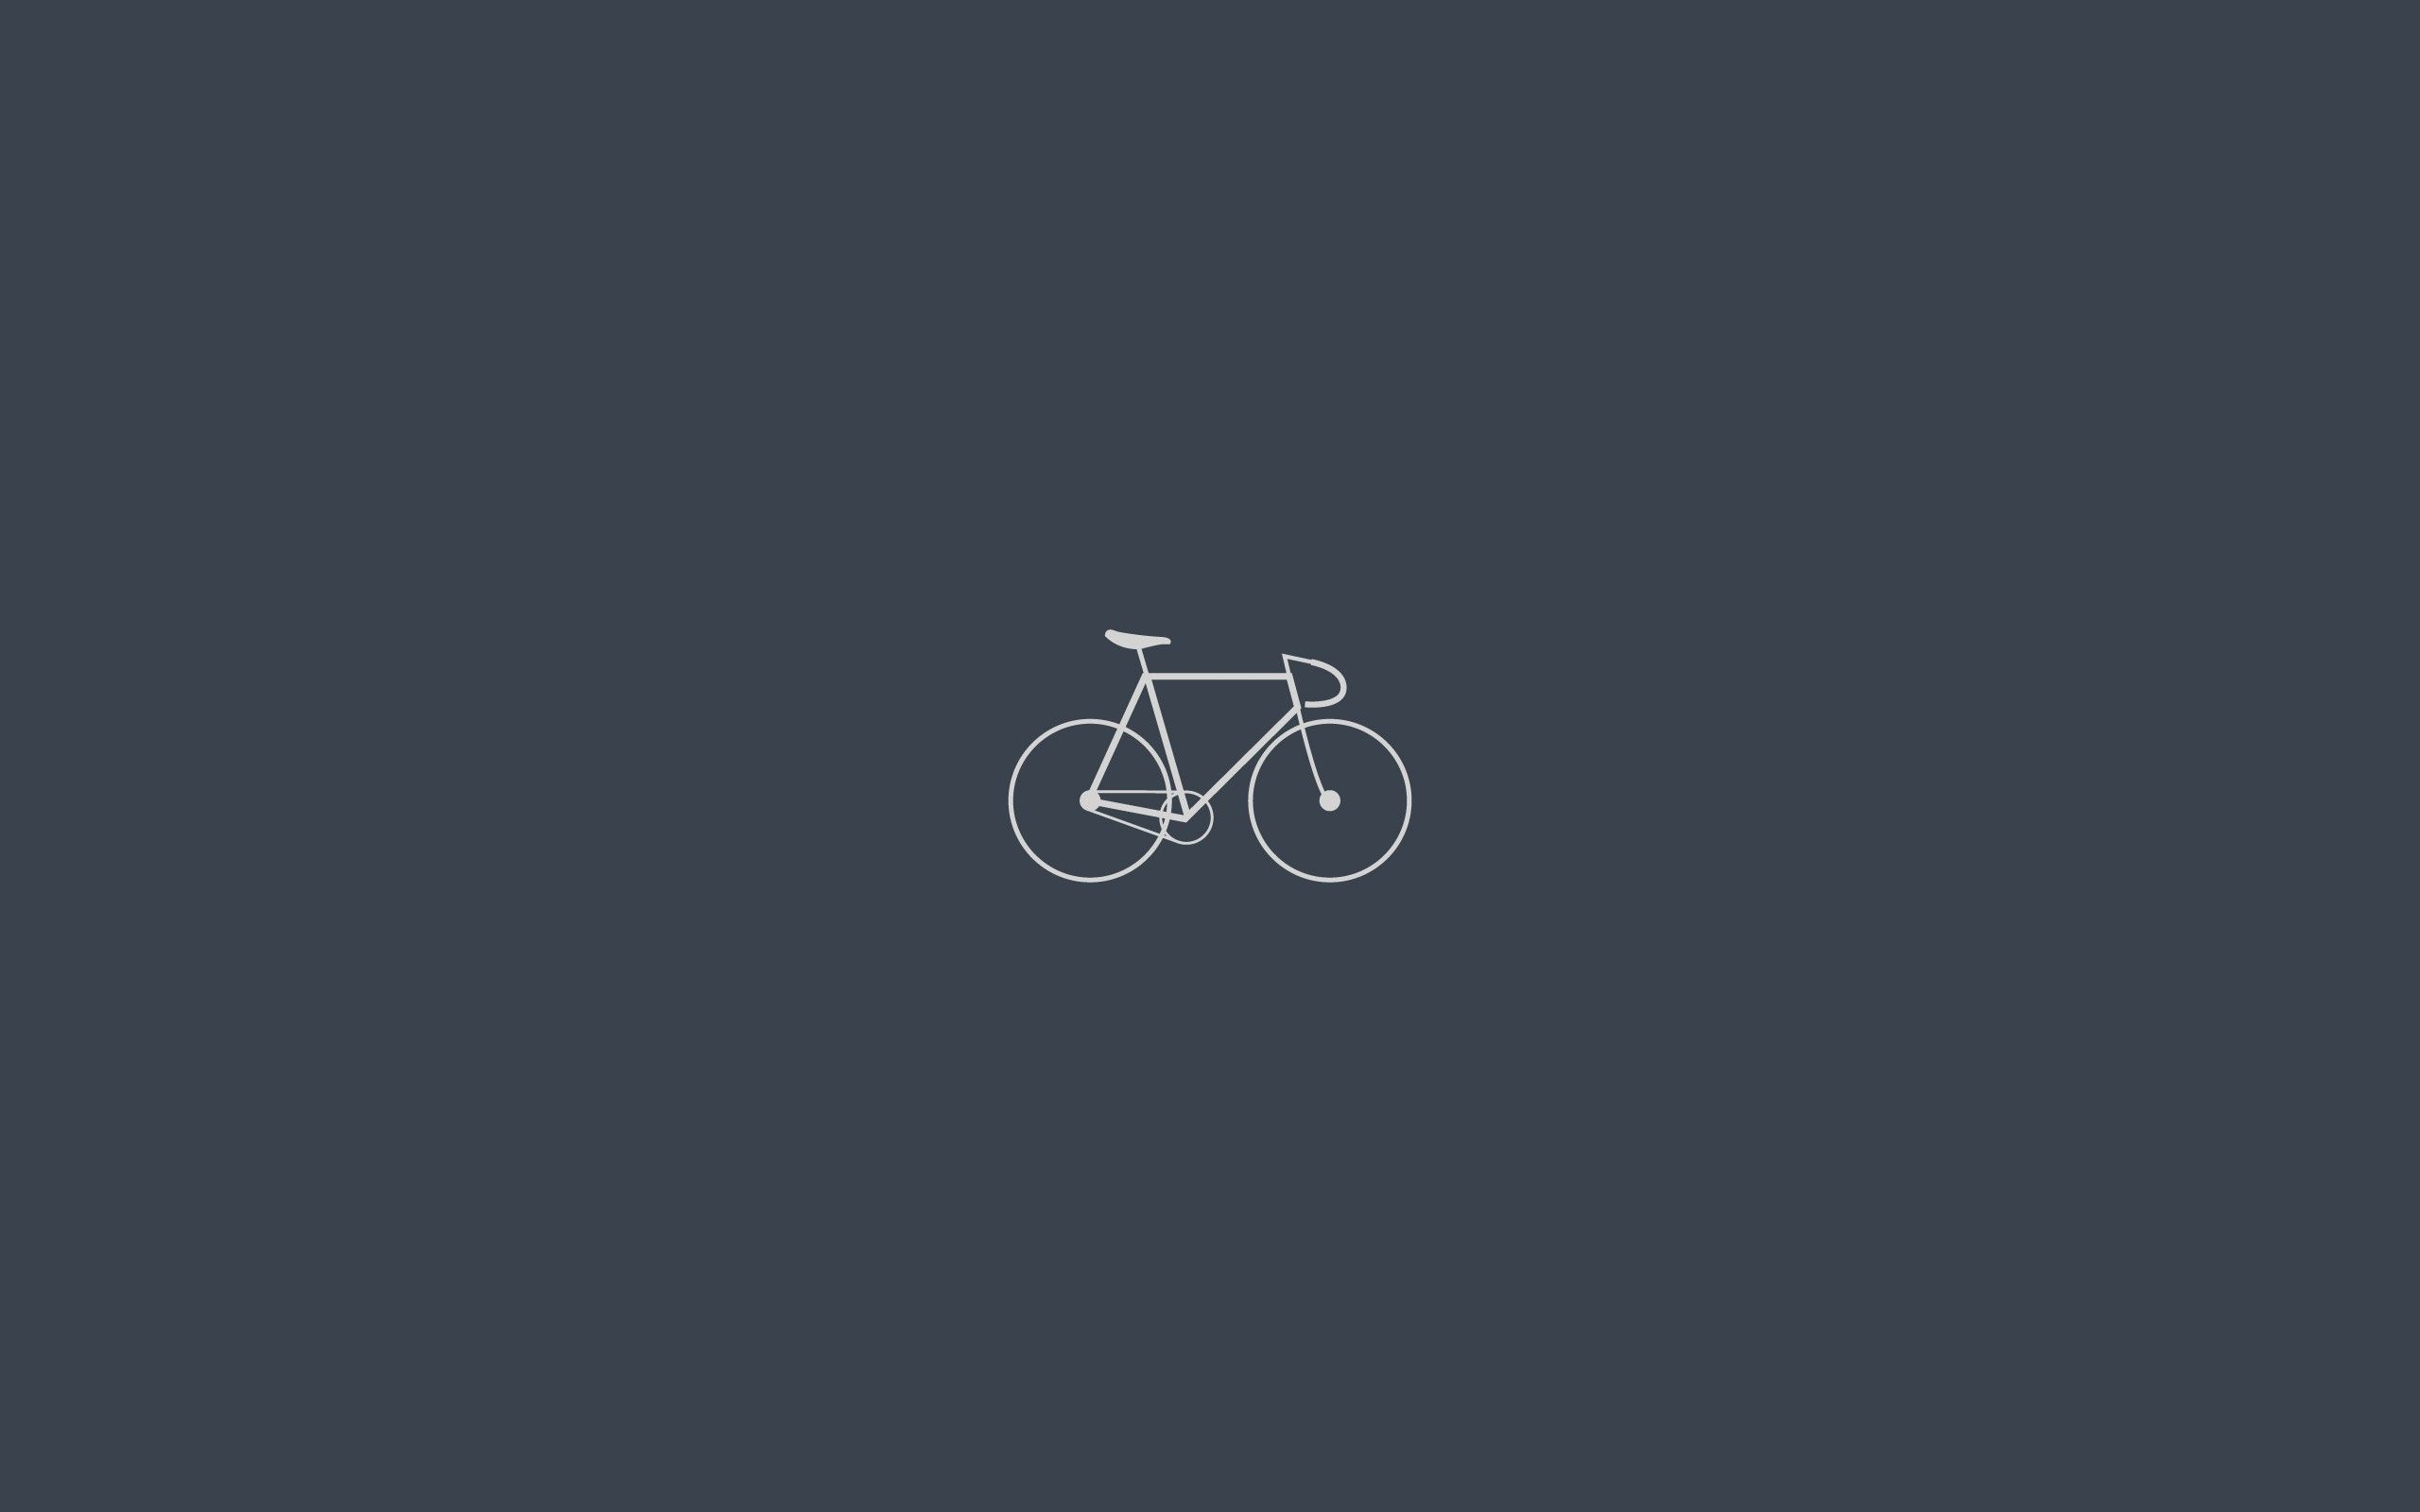 Bicycle Art Backgrounds Is 4k Wallpaper Minimalist Desktop Wallpaper Minimal Wallpaper Cute Simple Wallpapers